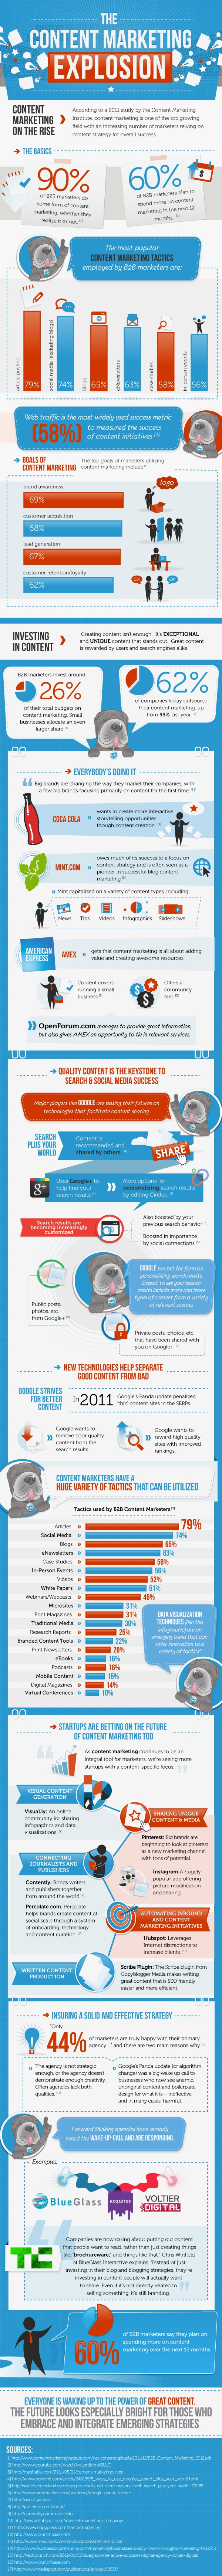 ContentMarketinginfographic